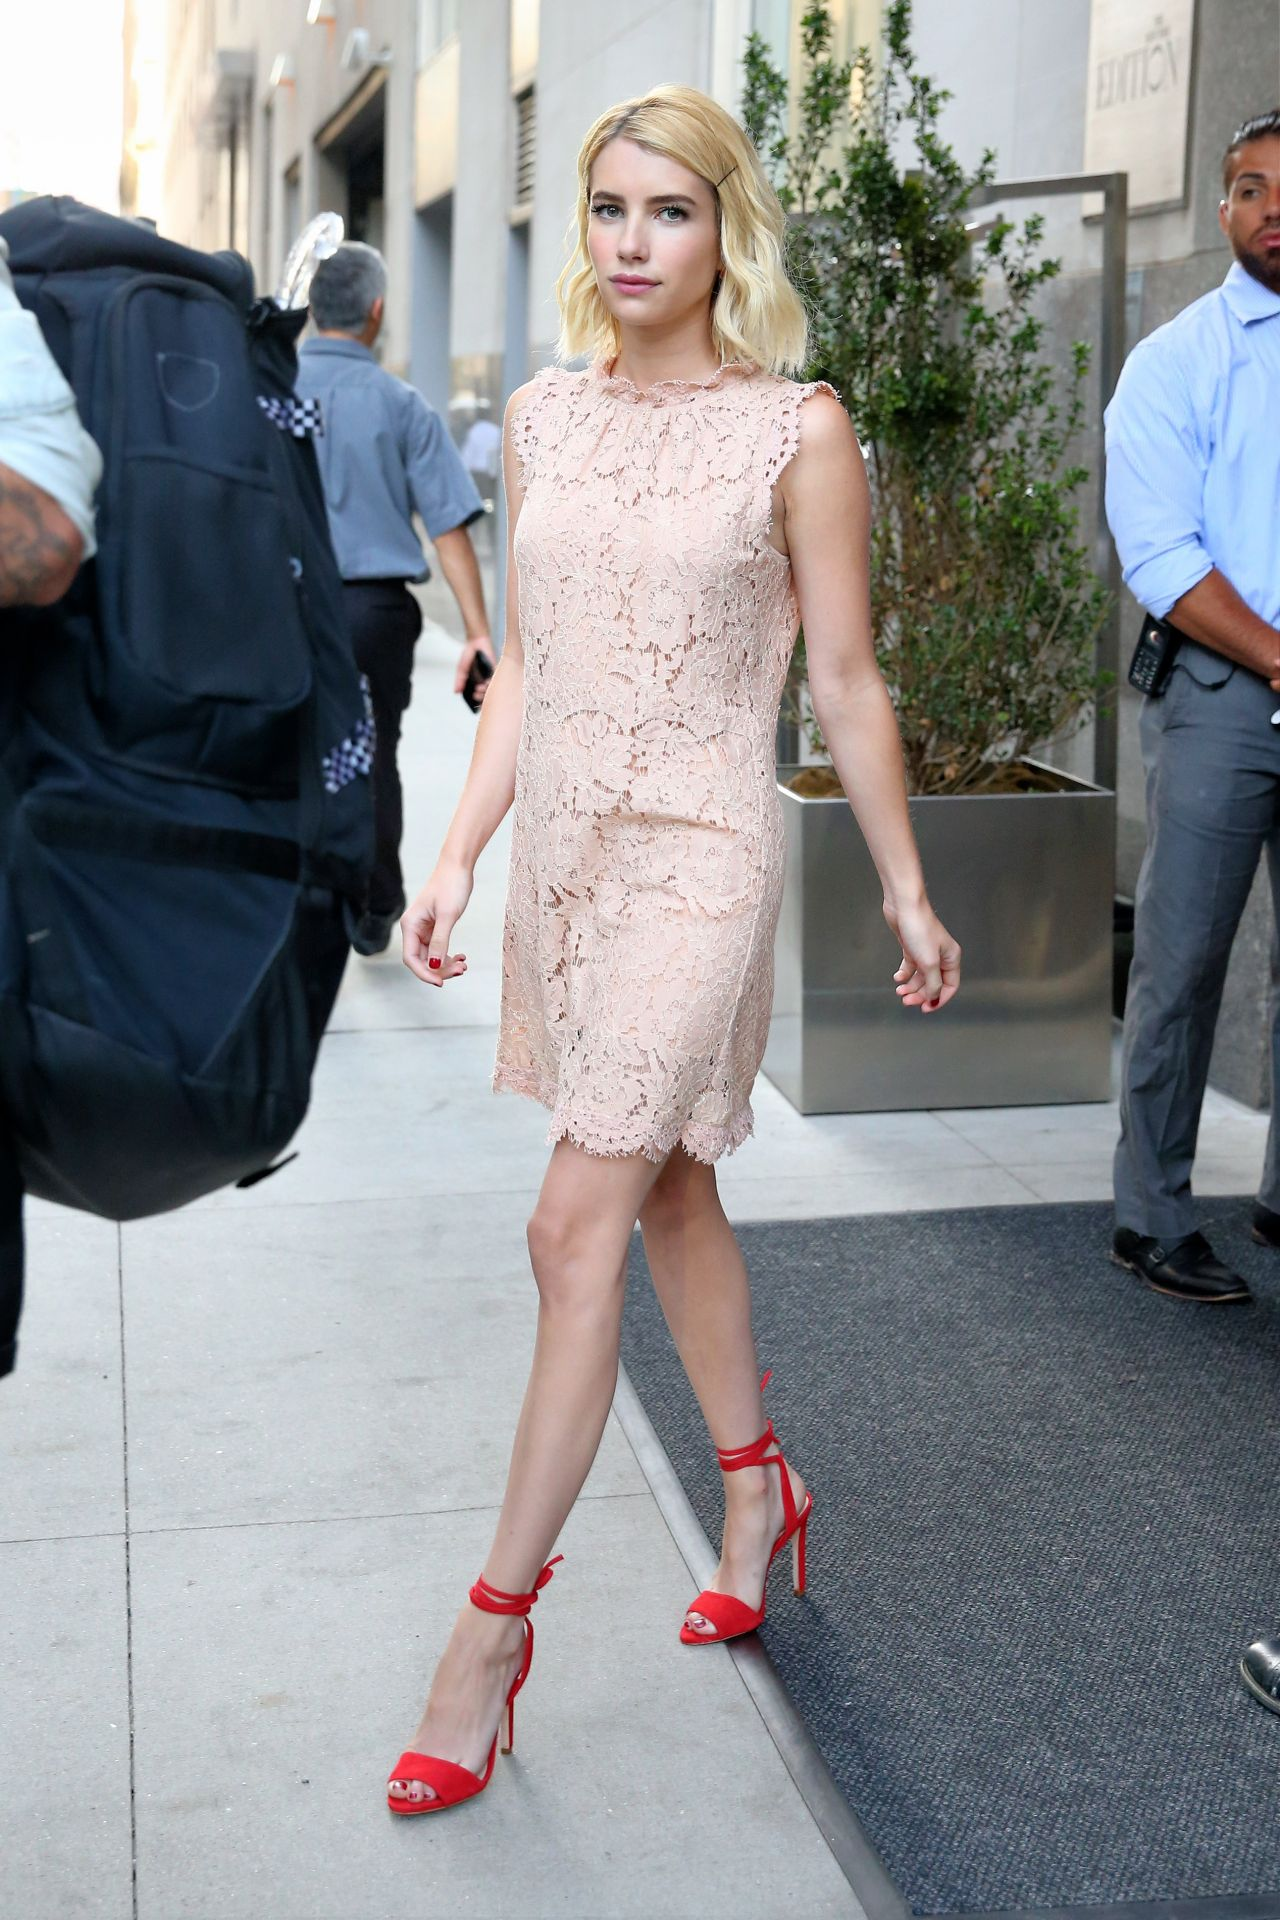 emma-roberts-is-looking-all-stylish-leaving-her-hotel-in-new-york-city-07-12-2016-4 (1)